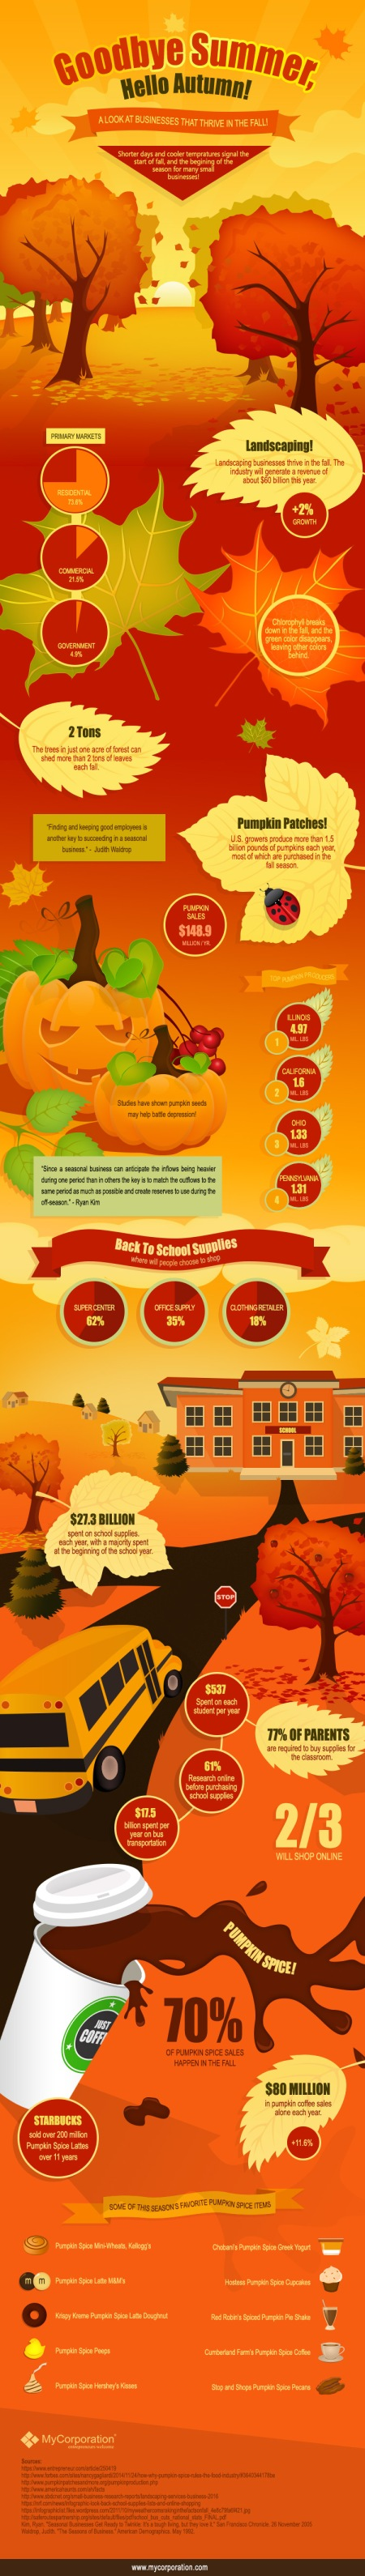 infographic_autumn_2